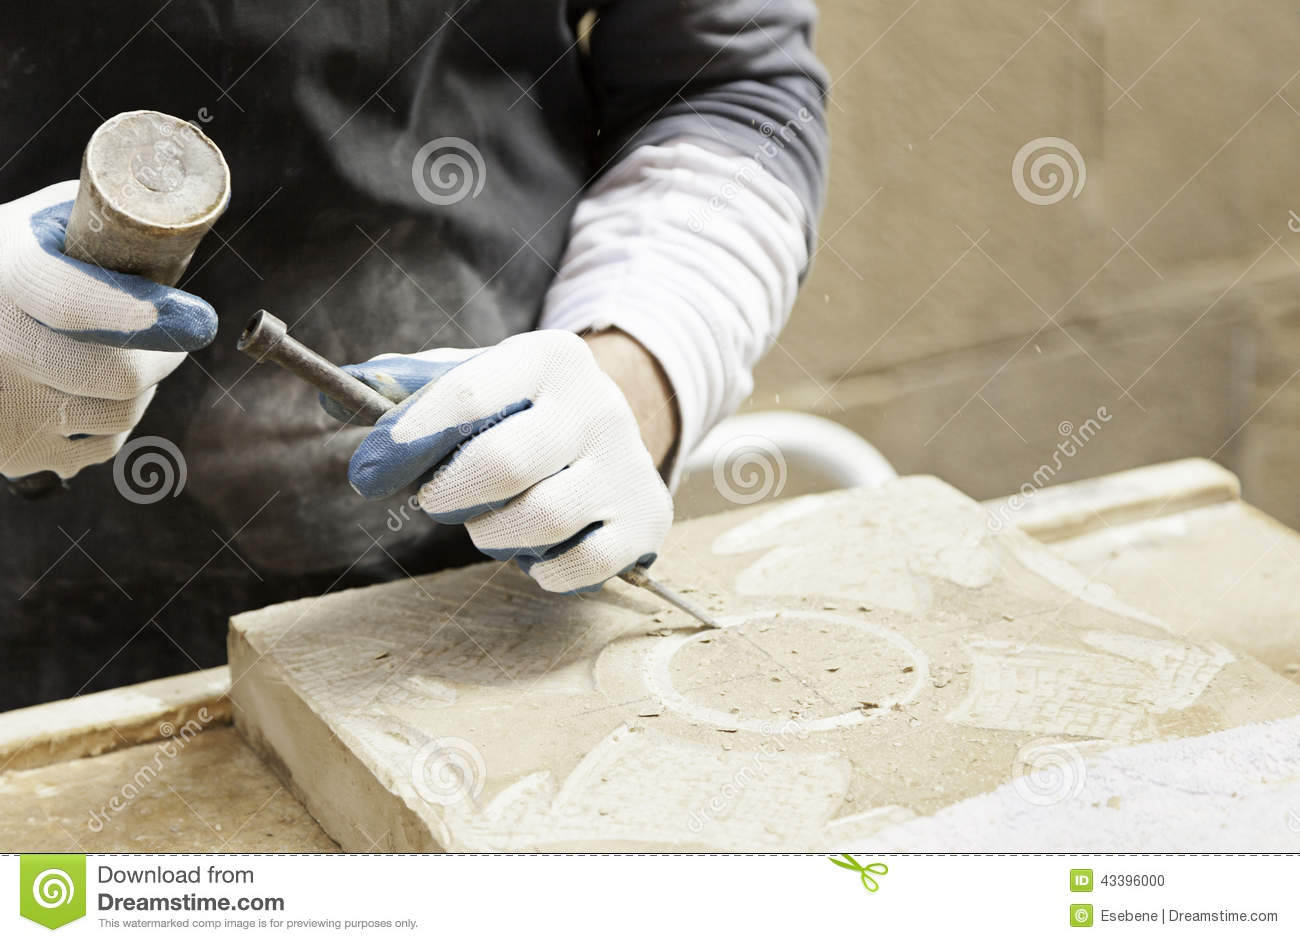 Where Are Craftsman Tools Made >> Man Carving Stone Stock Photo - Image: 43396000